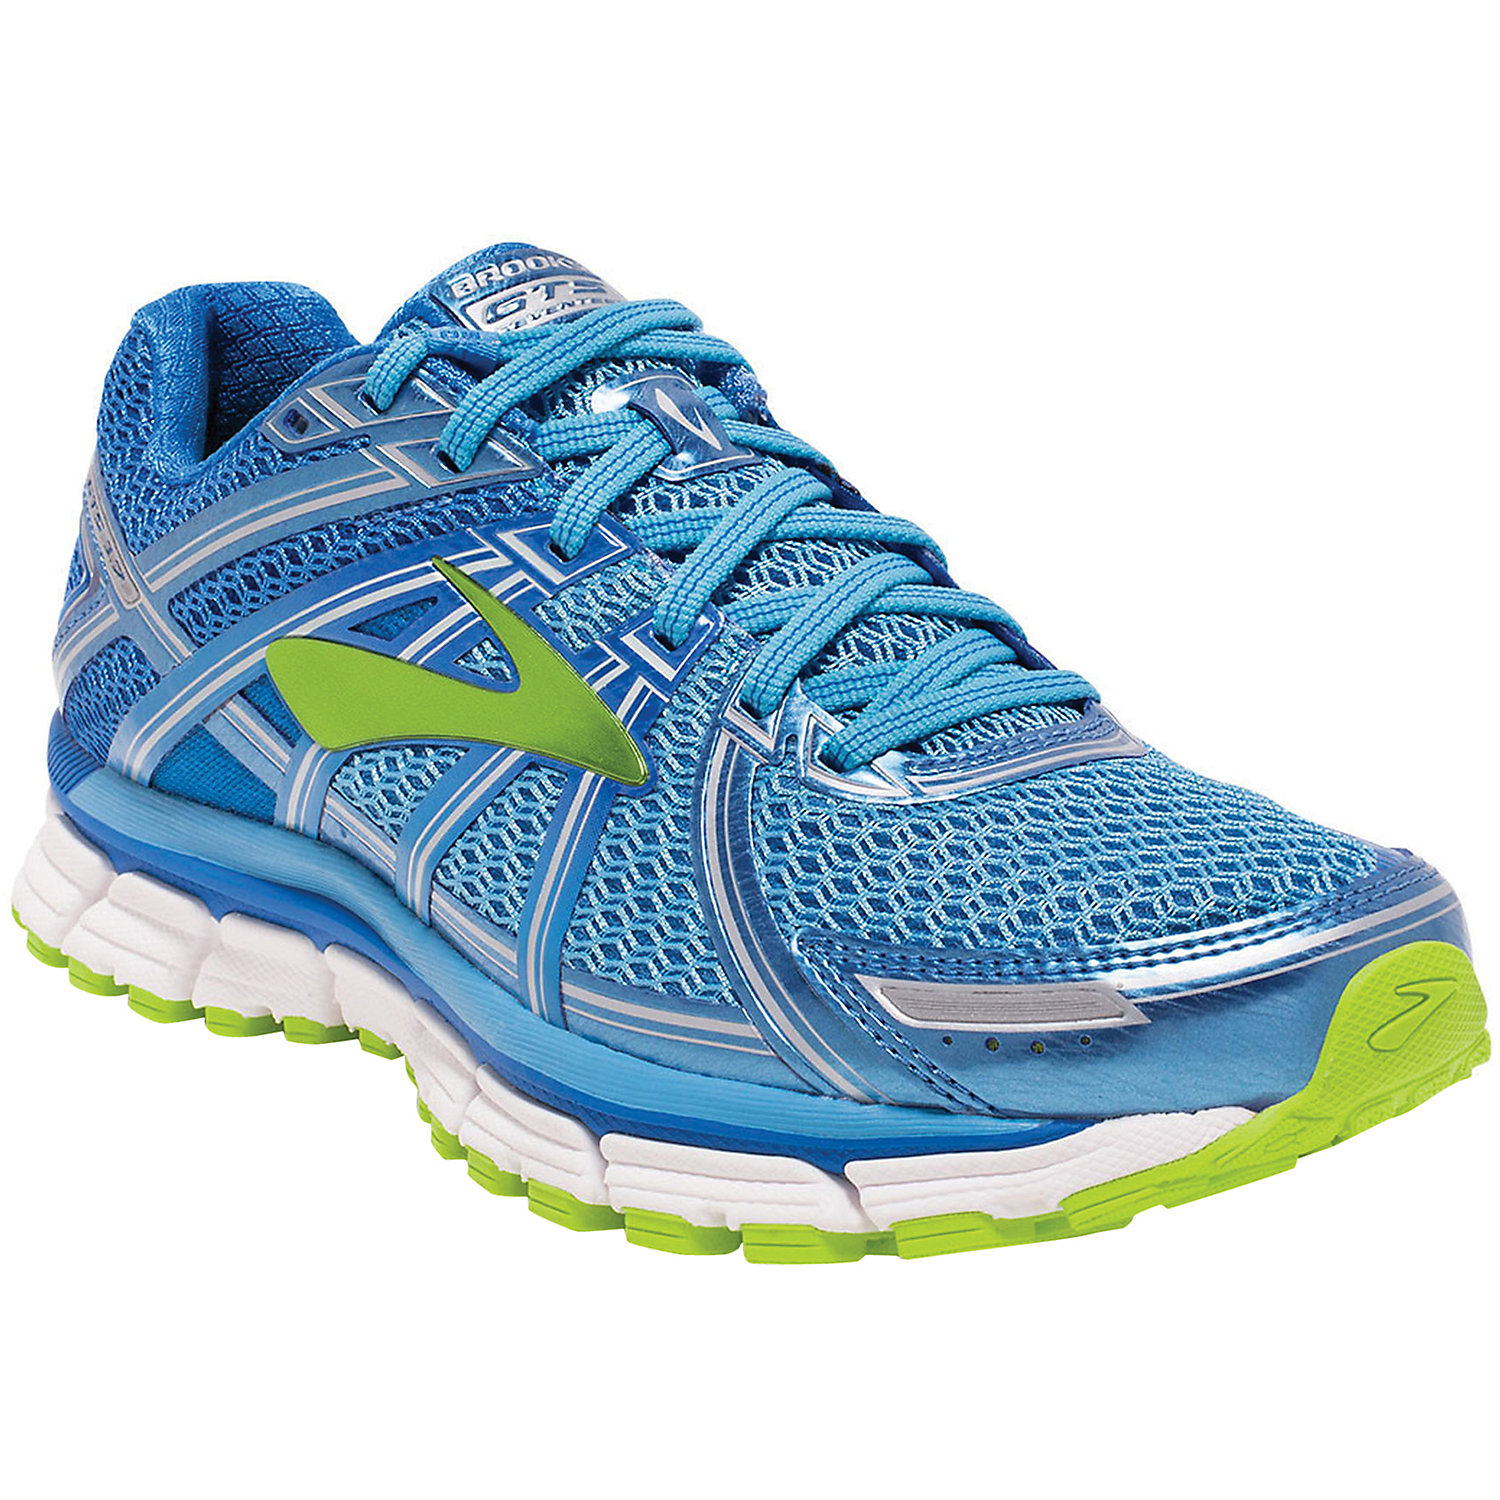 daa2b7e0aa Brooks Women's Adrenaline GTS 17 Shoe - Moosejaw